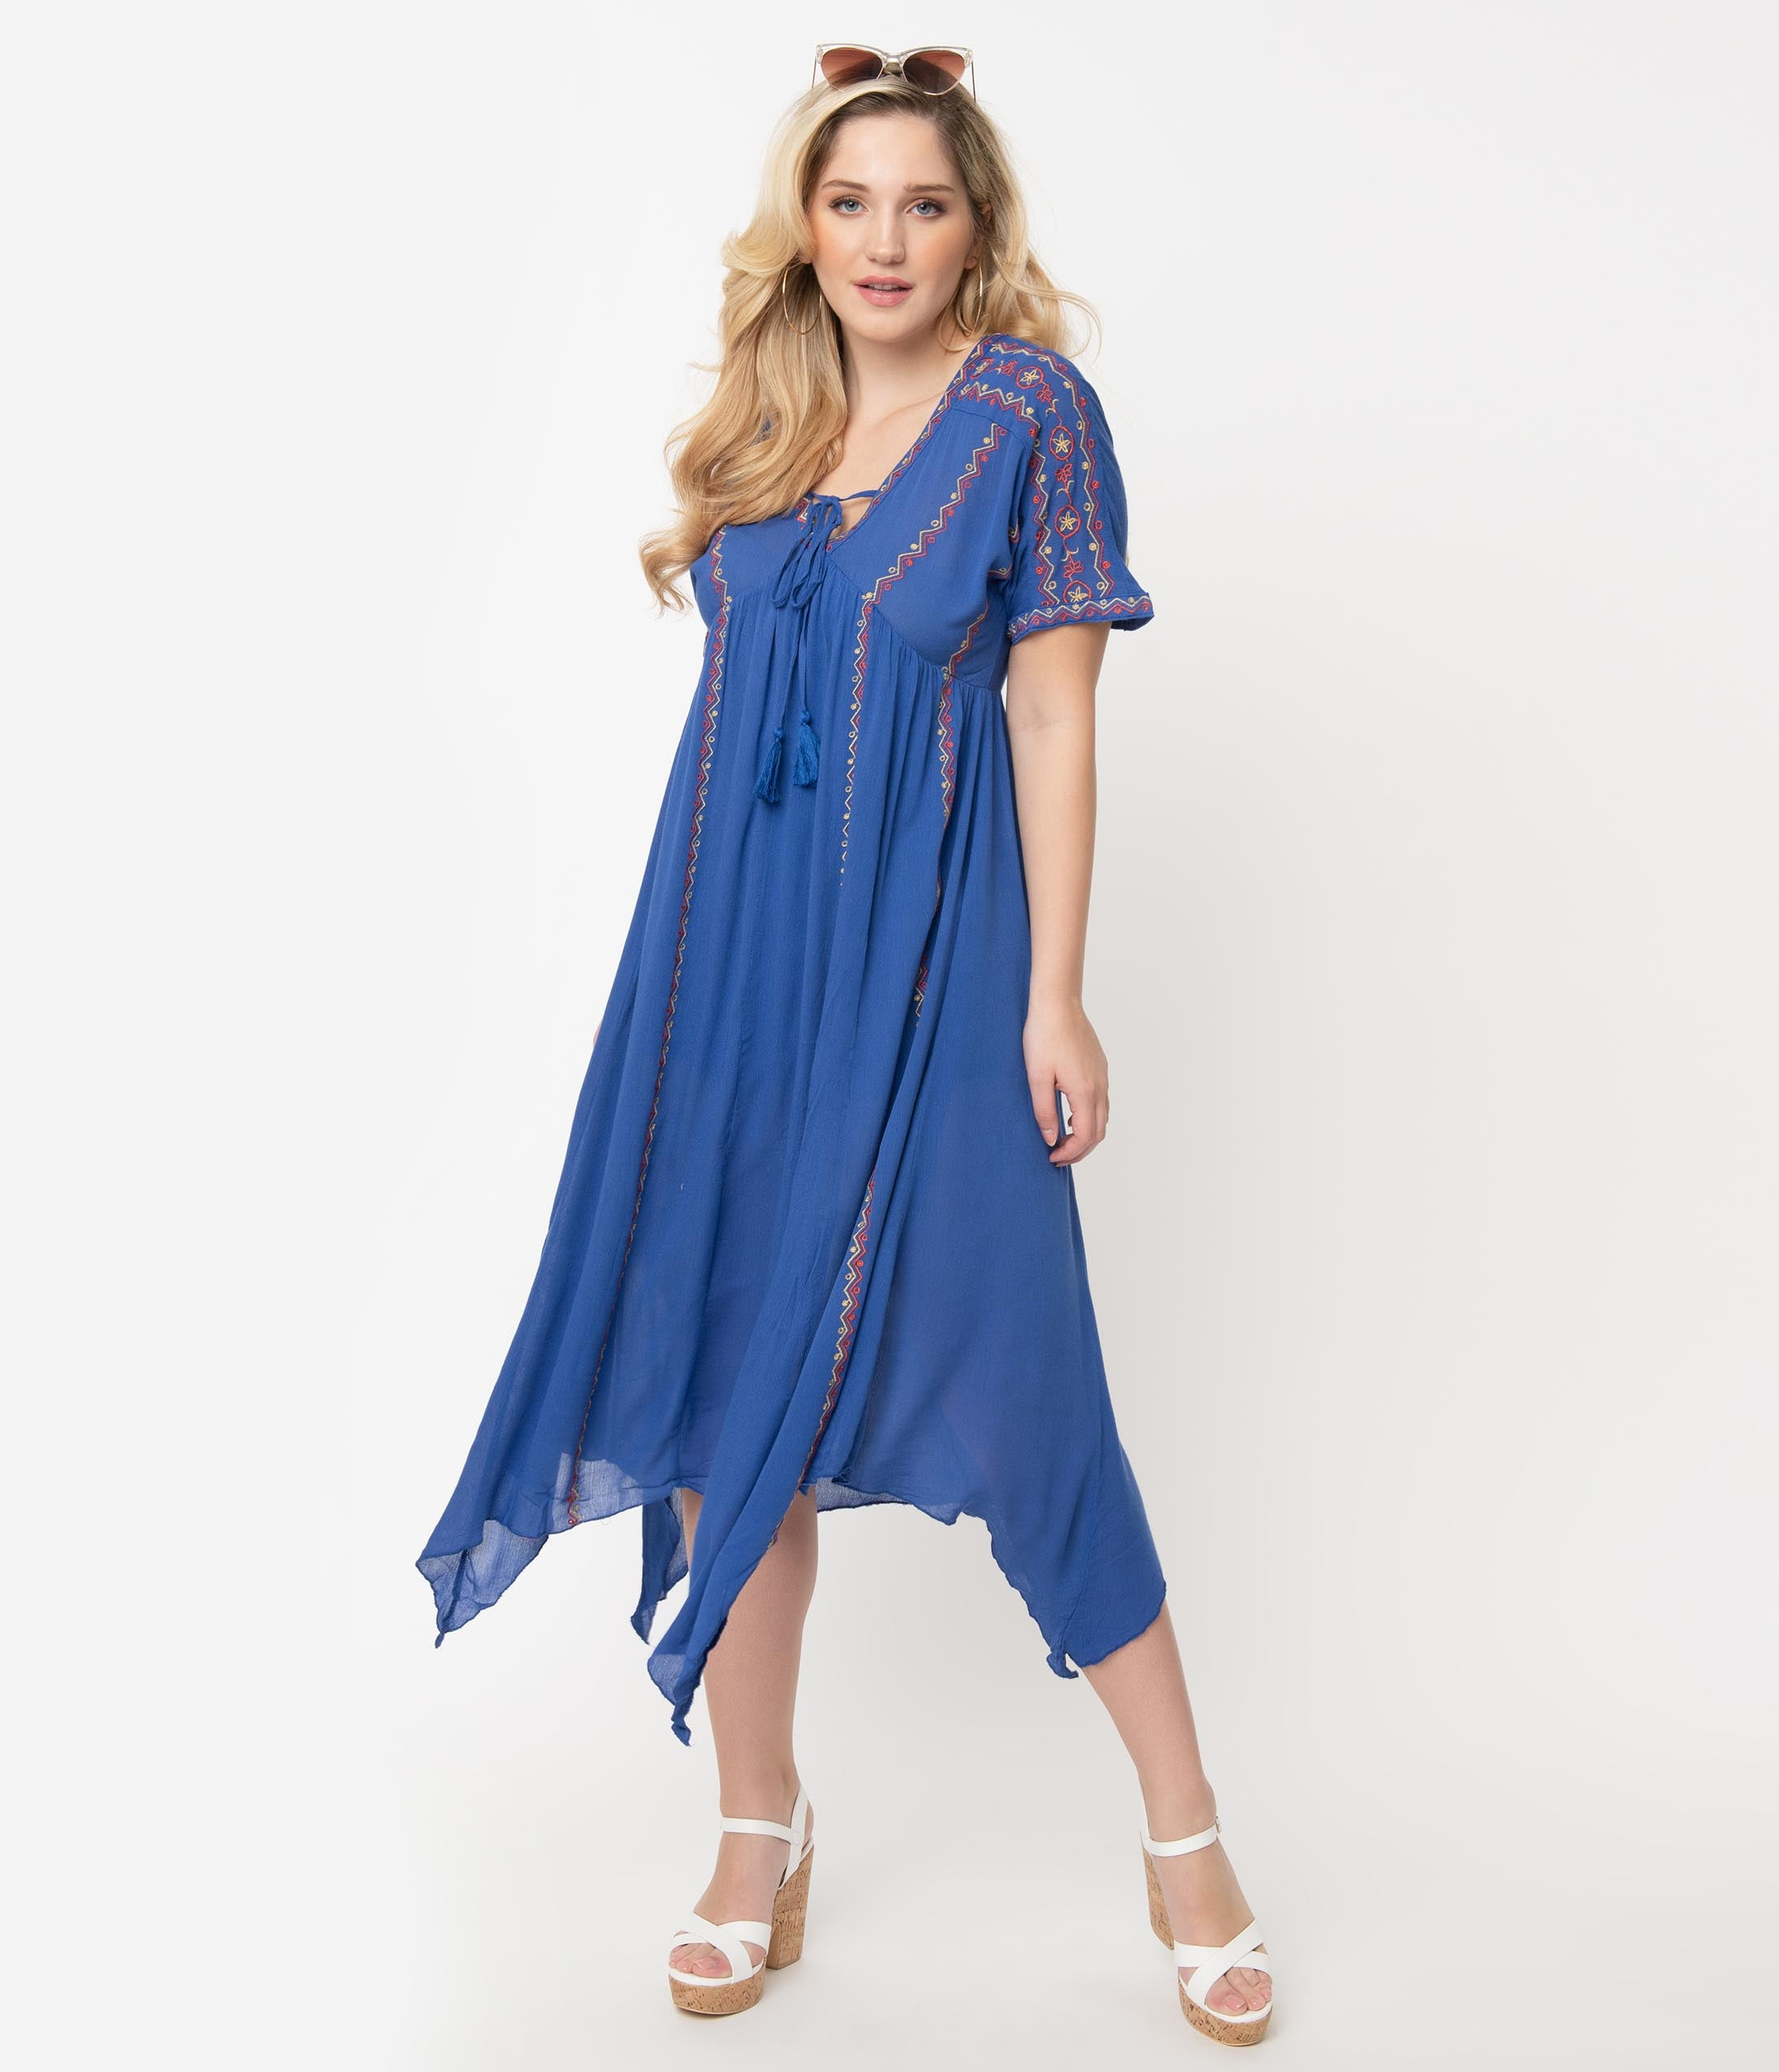 Sailor Dresses, Nautical Theme Dress, WW2 Dresses Royal Blue Embroidered Midi Dress $72.00 AT vintagedancer.com